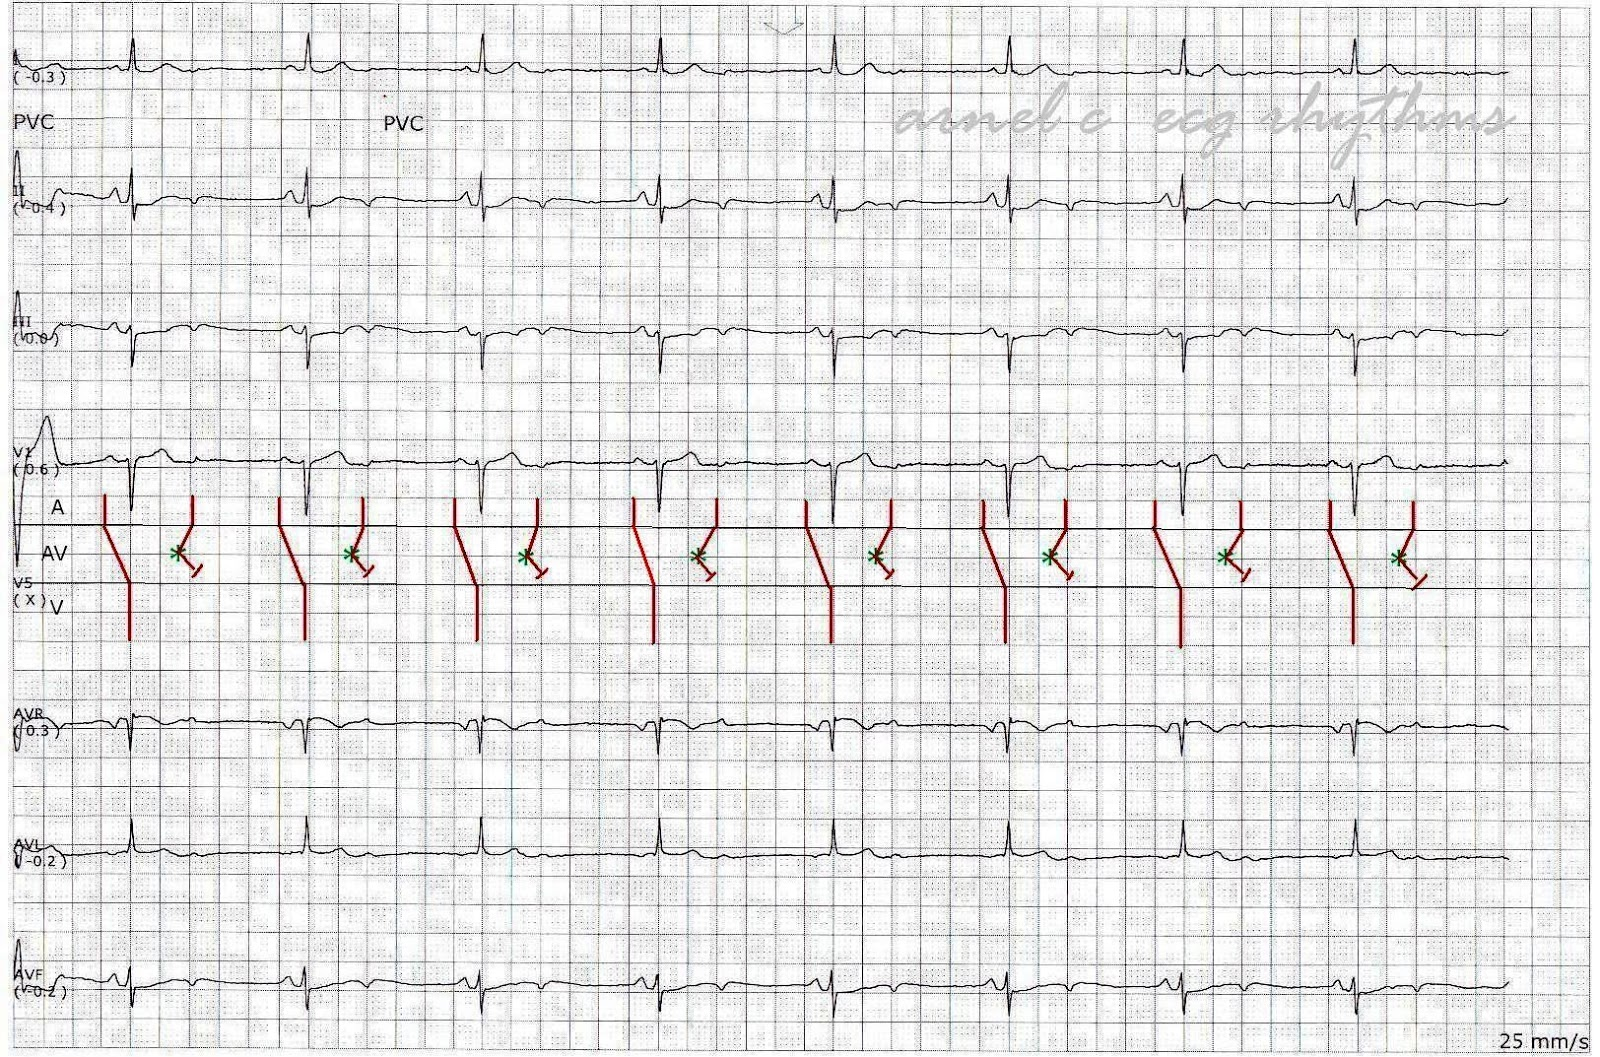 Ecg Rhythms A Rare Cause Of Bradycardia Non Conducted